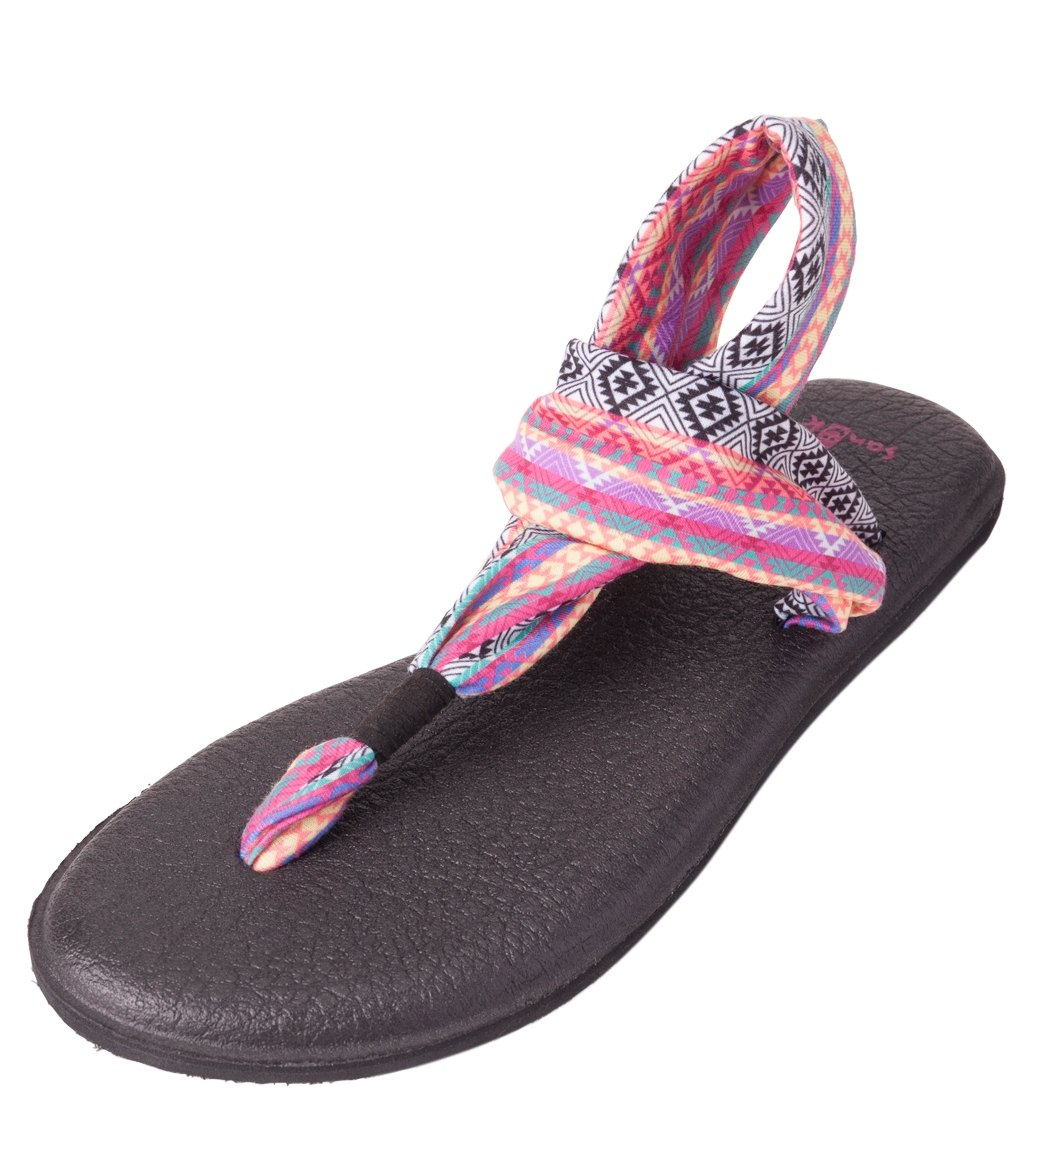 b72521f0aac0 Sanuk Yoga Sling 2 Prints Sandal at SwimOutlet.com